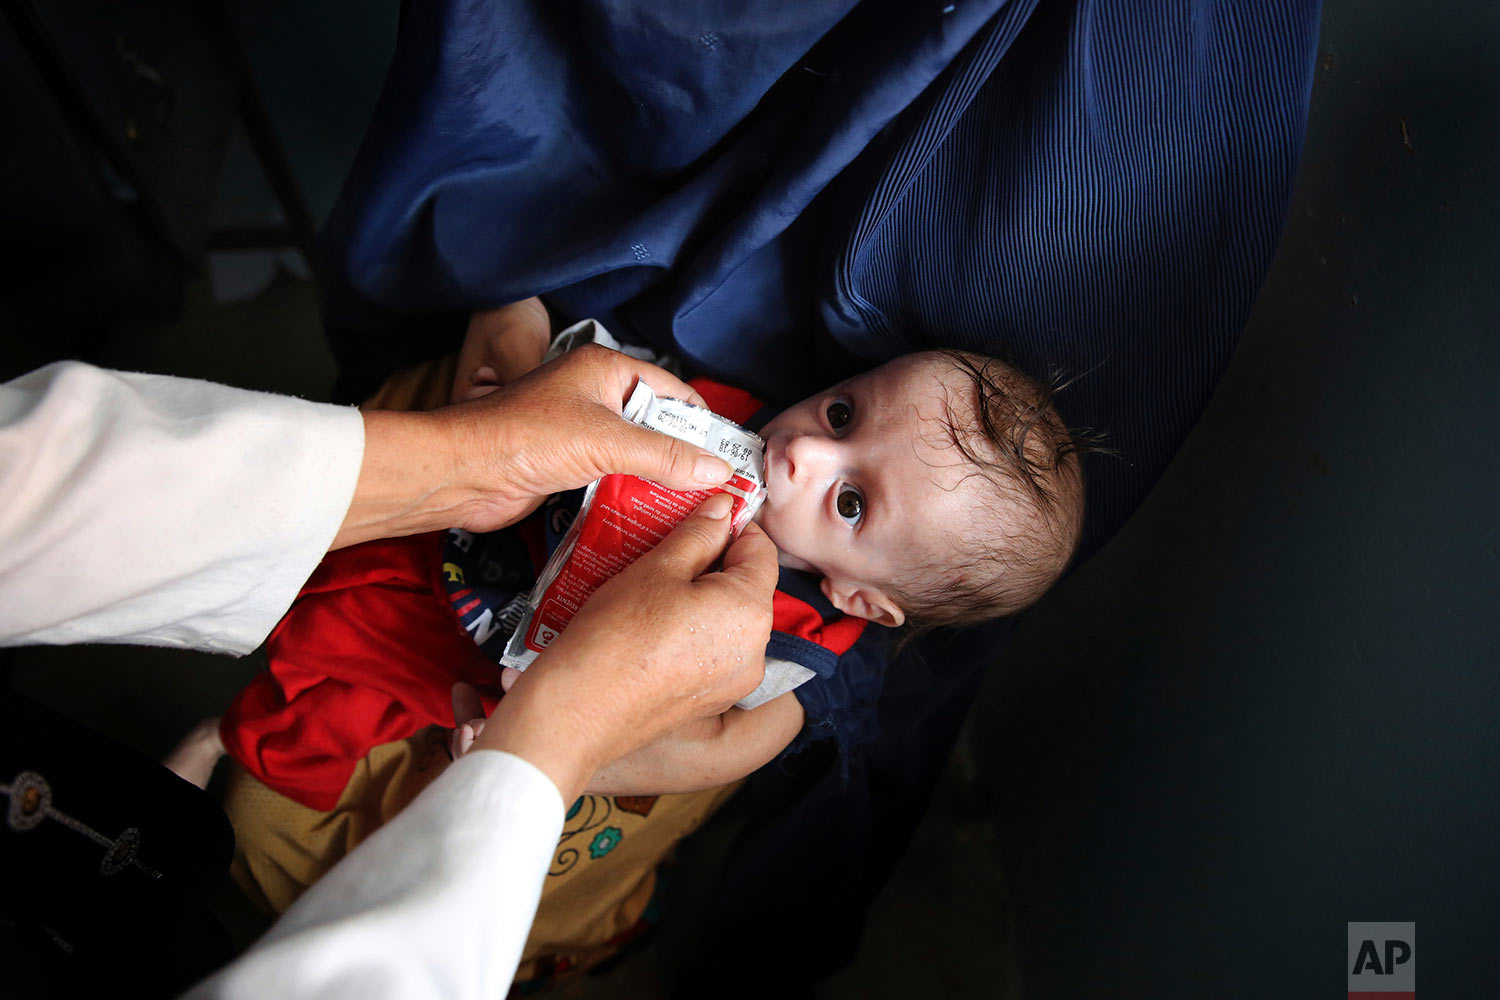 A health worker feeds a supplement as part of a nutrition regime to 7-month-old Abdullah, who is suffering from malnutrition at UNICEF clinic in Jabal Saraj north of Kabul, Afghanistan, Aug. 26, 2019. Days ago, he was at an emergency ward. (AP Photo/Rafiq Maqbool)